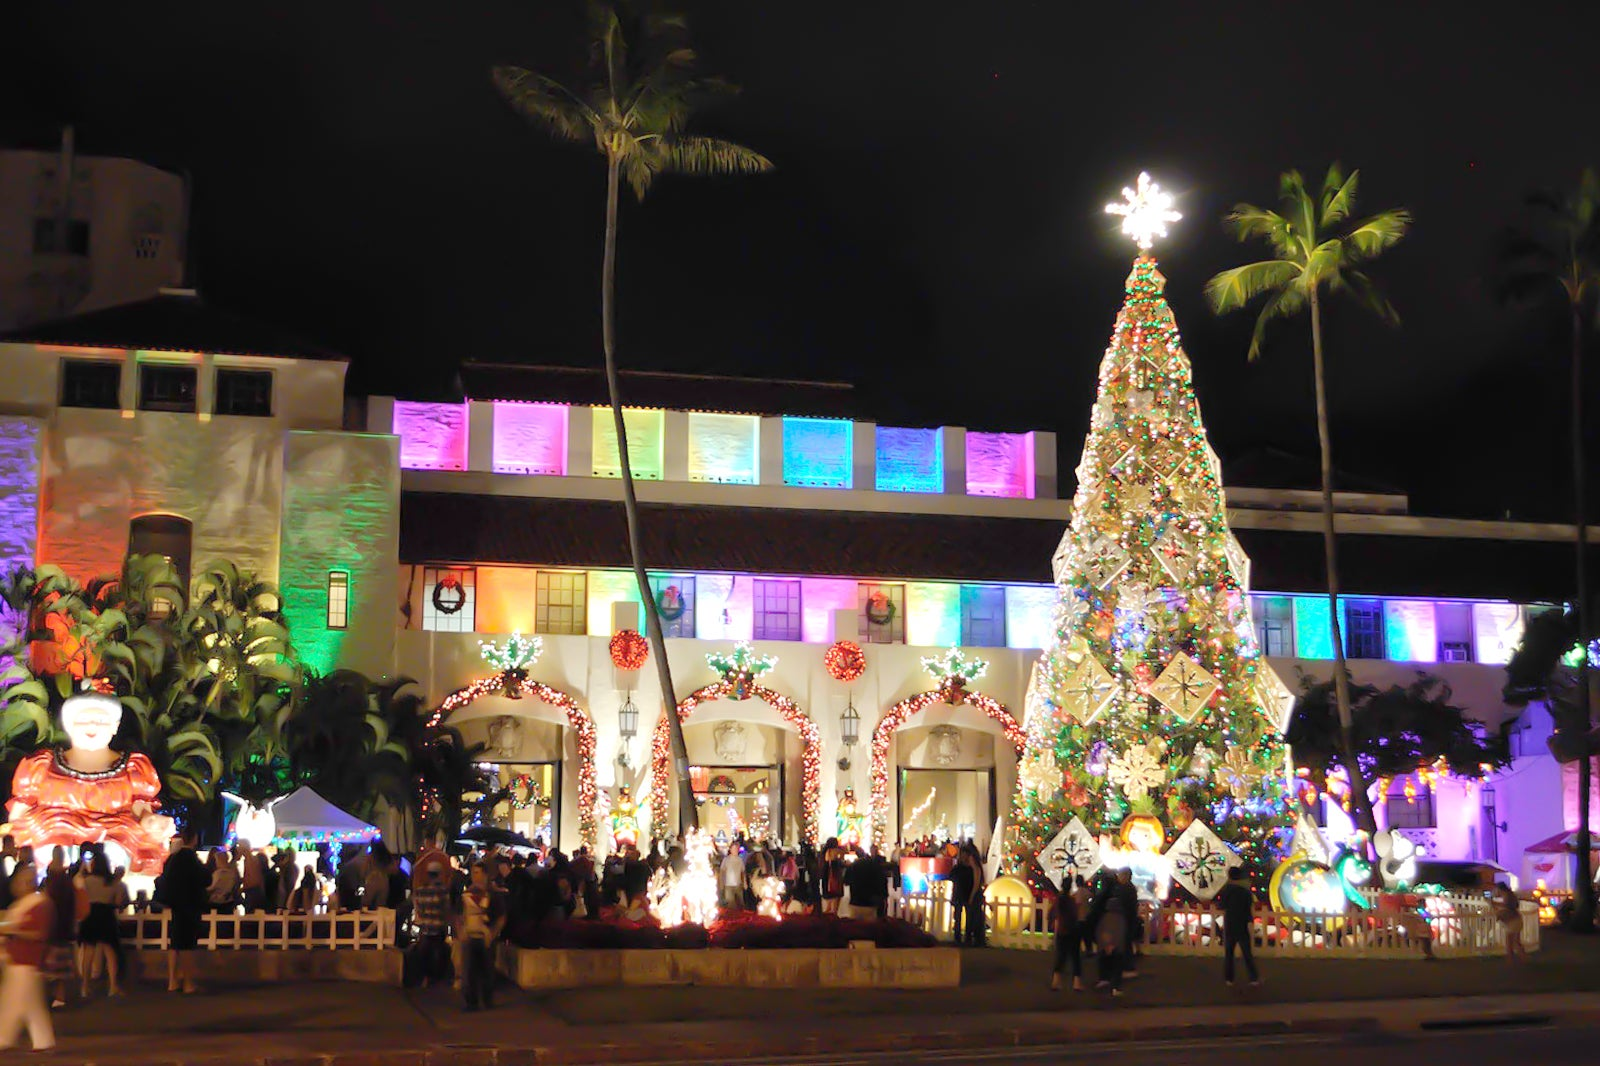 Honolulu Hale Christmas 2021 10 Things To Do In Honolulu In Winter Plan Your Itinerary For Winter In Hawaii Go Guides